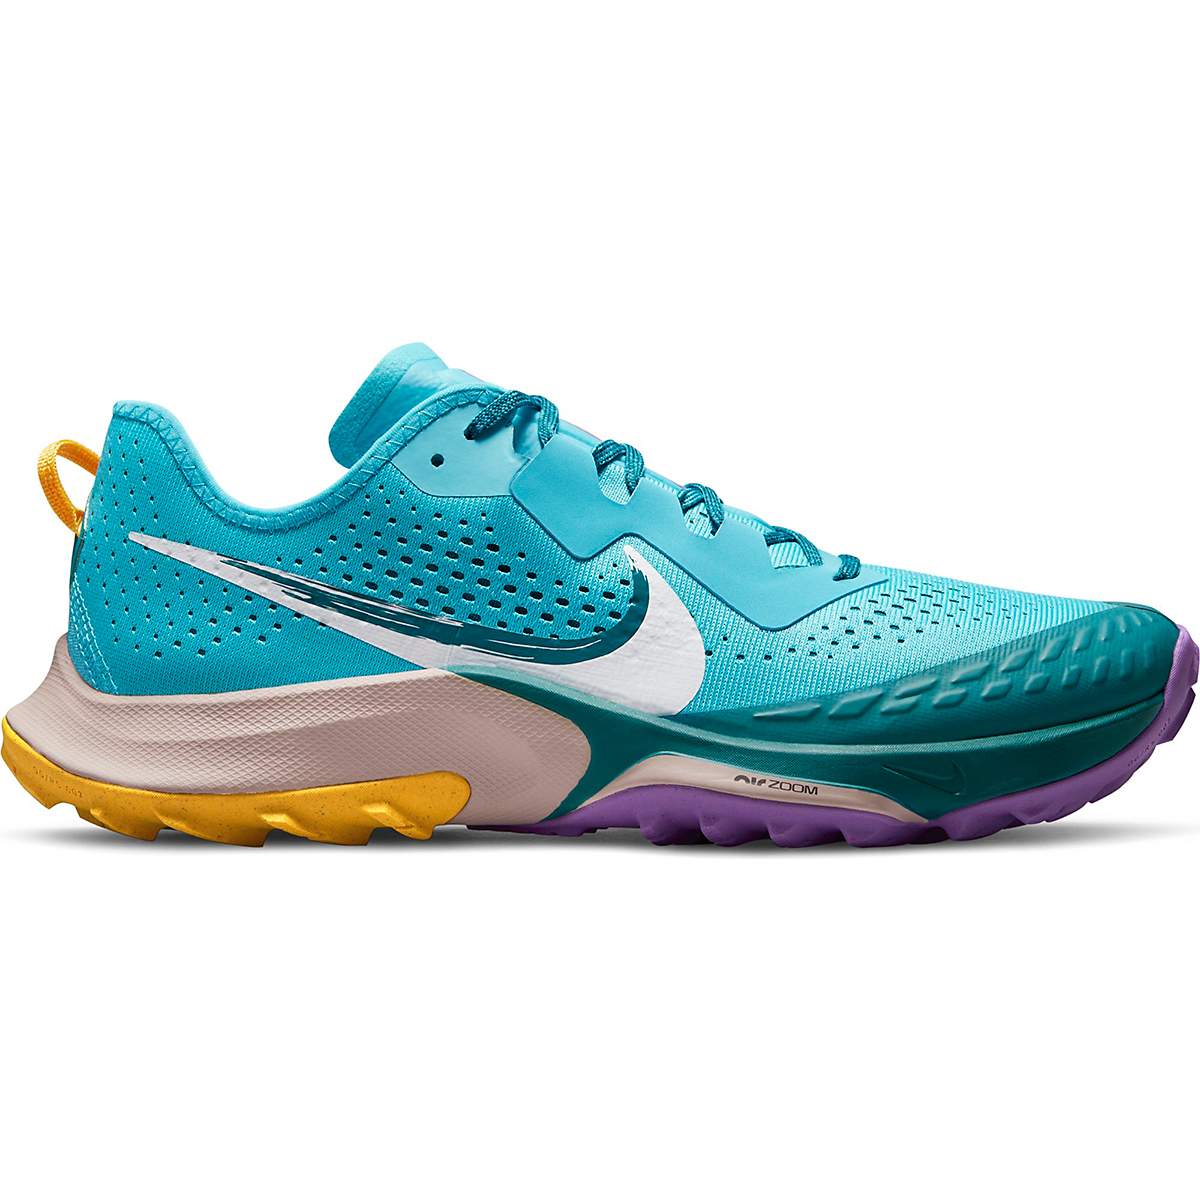 Men's Nike Air Zoom Terra Kiger 7 Trail Running Shoe - Color: Turquoise Blue/White/Mystic Teal - Size: 6 - Width: Regular, Turquoise Blue/White/Mystic Teal, large, image 1